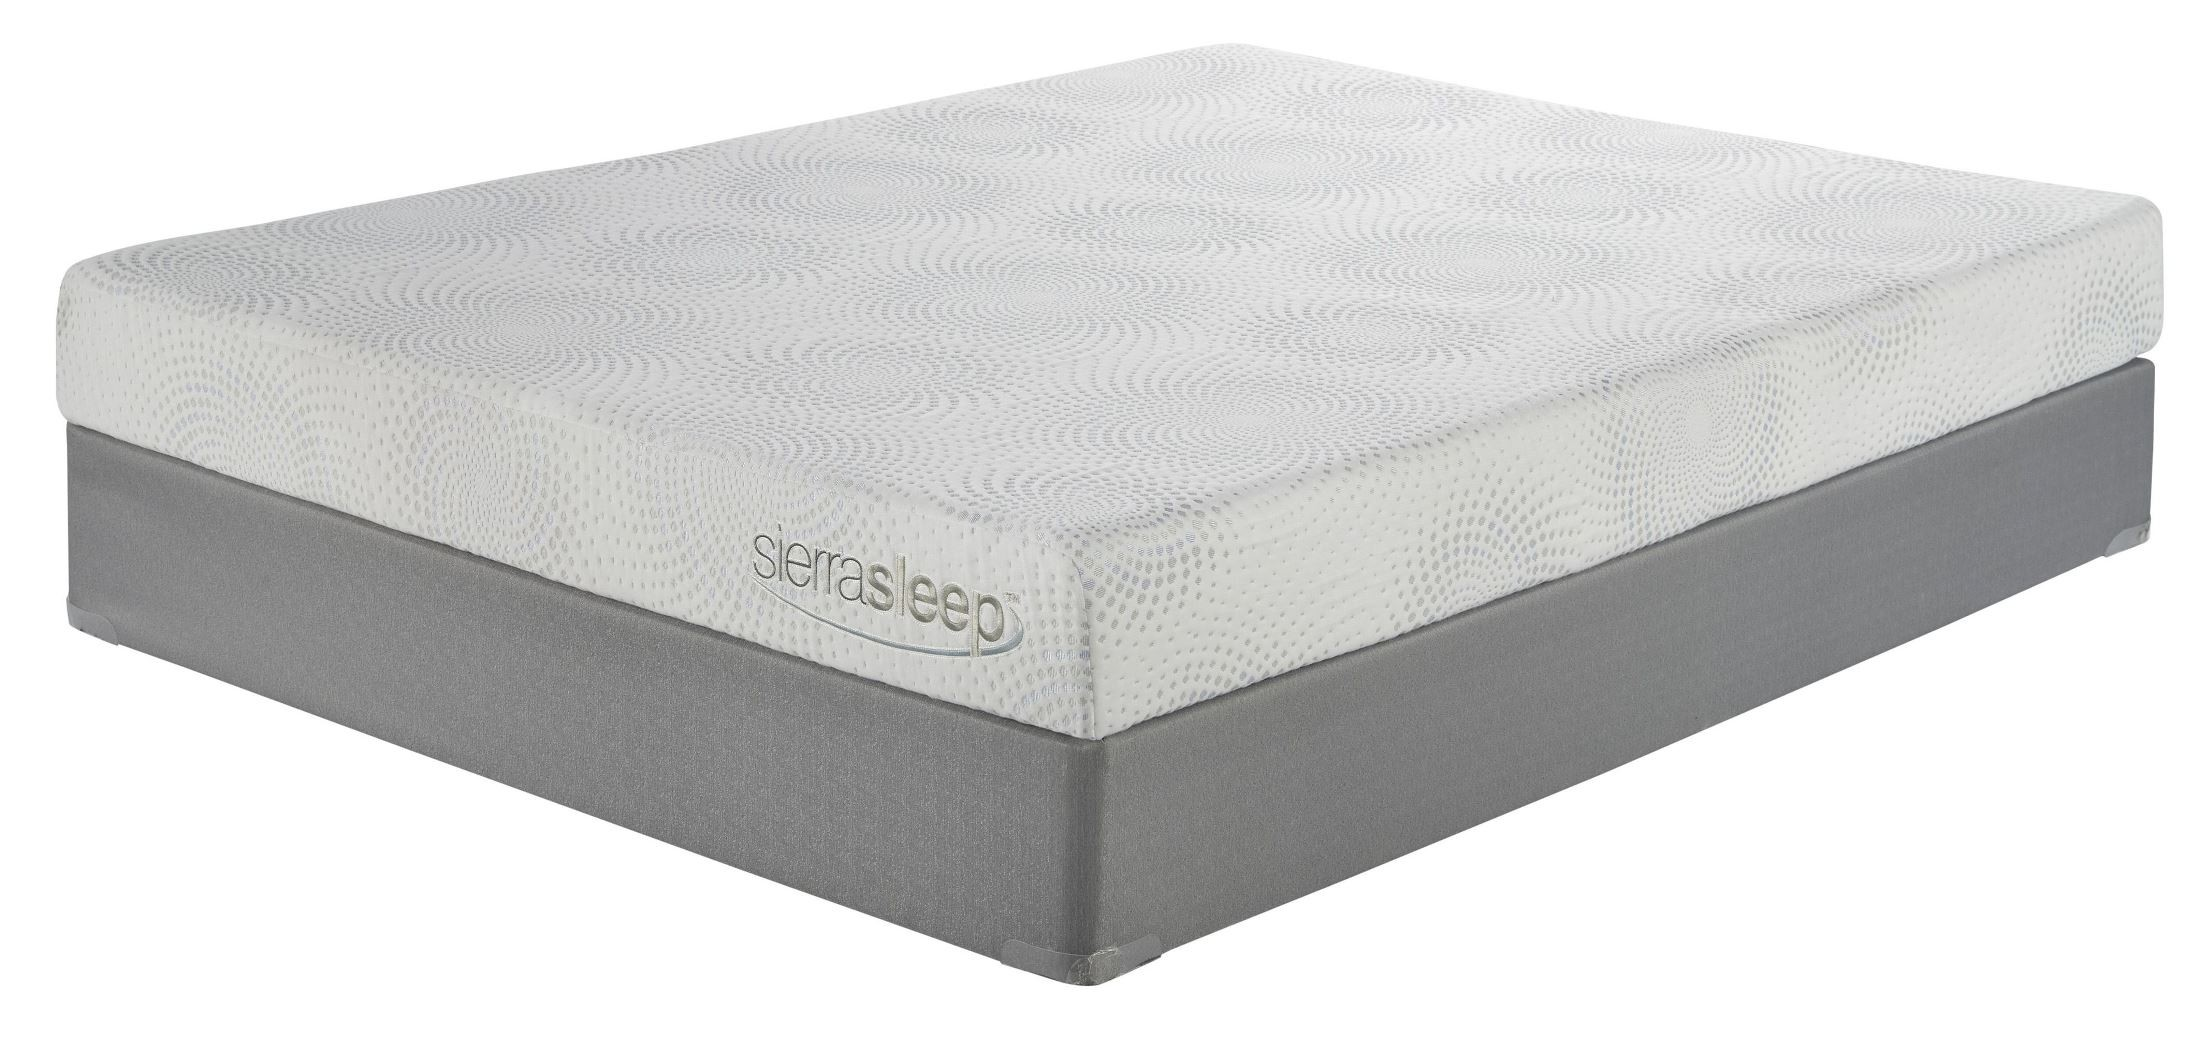 7 inch gel memory foam white king mattress with foundation from ashley coleman furniture. Black Bedroom Furniture Sets. Home Design Ideas